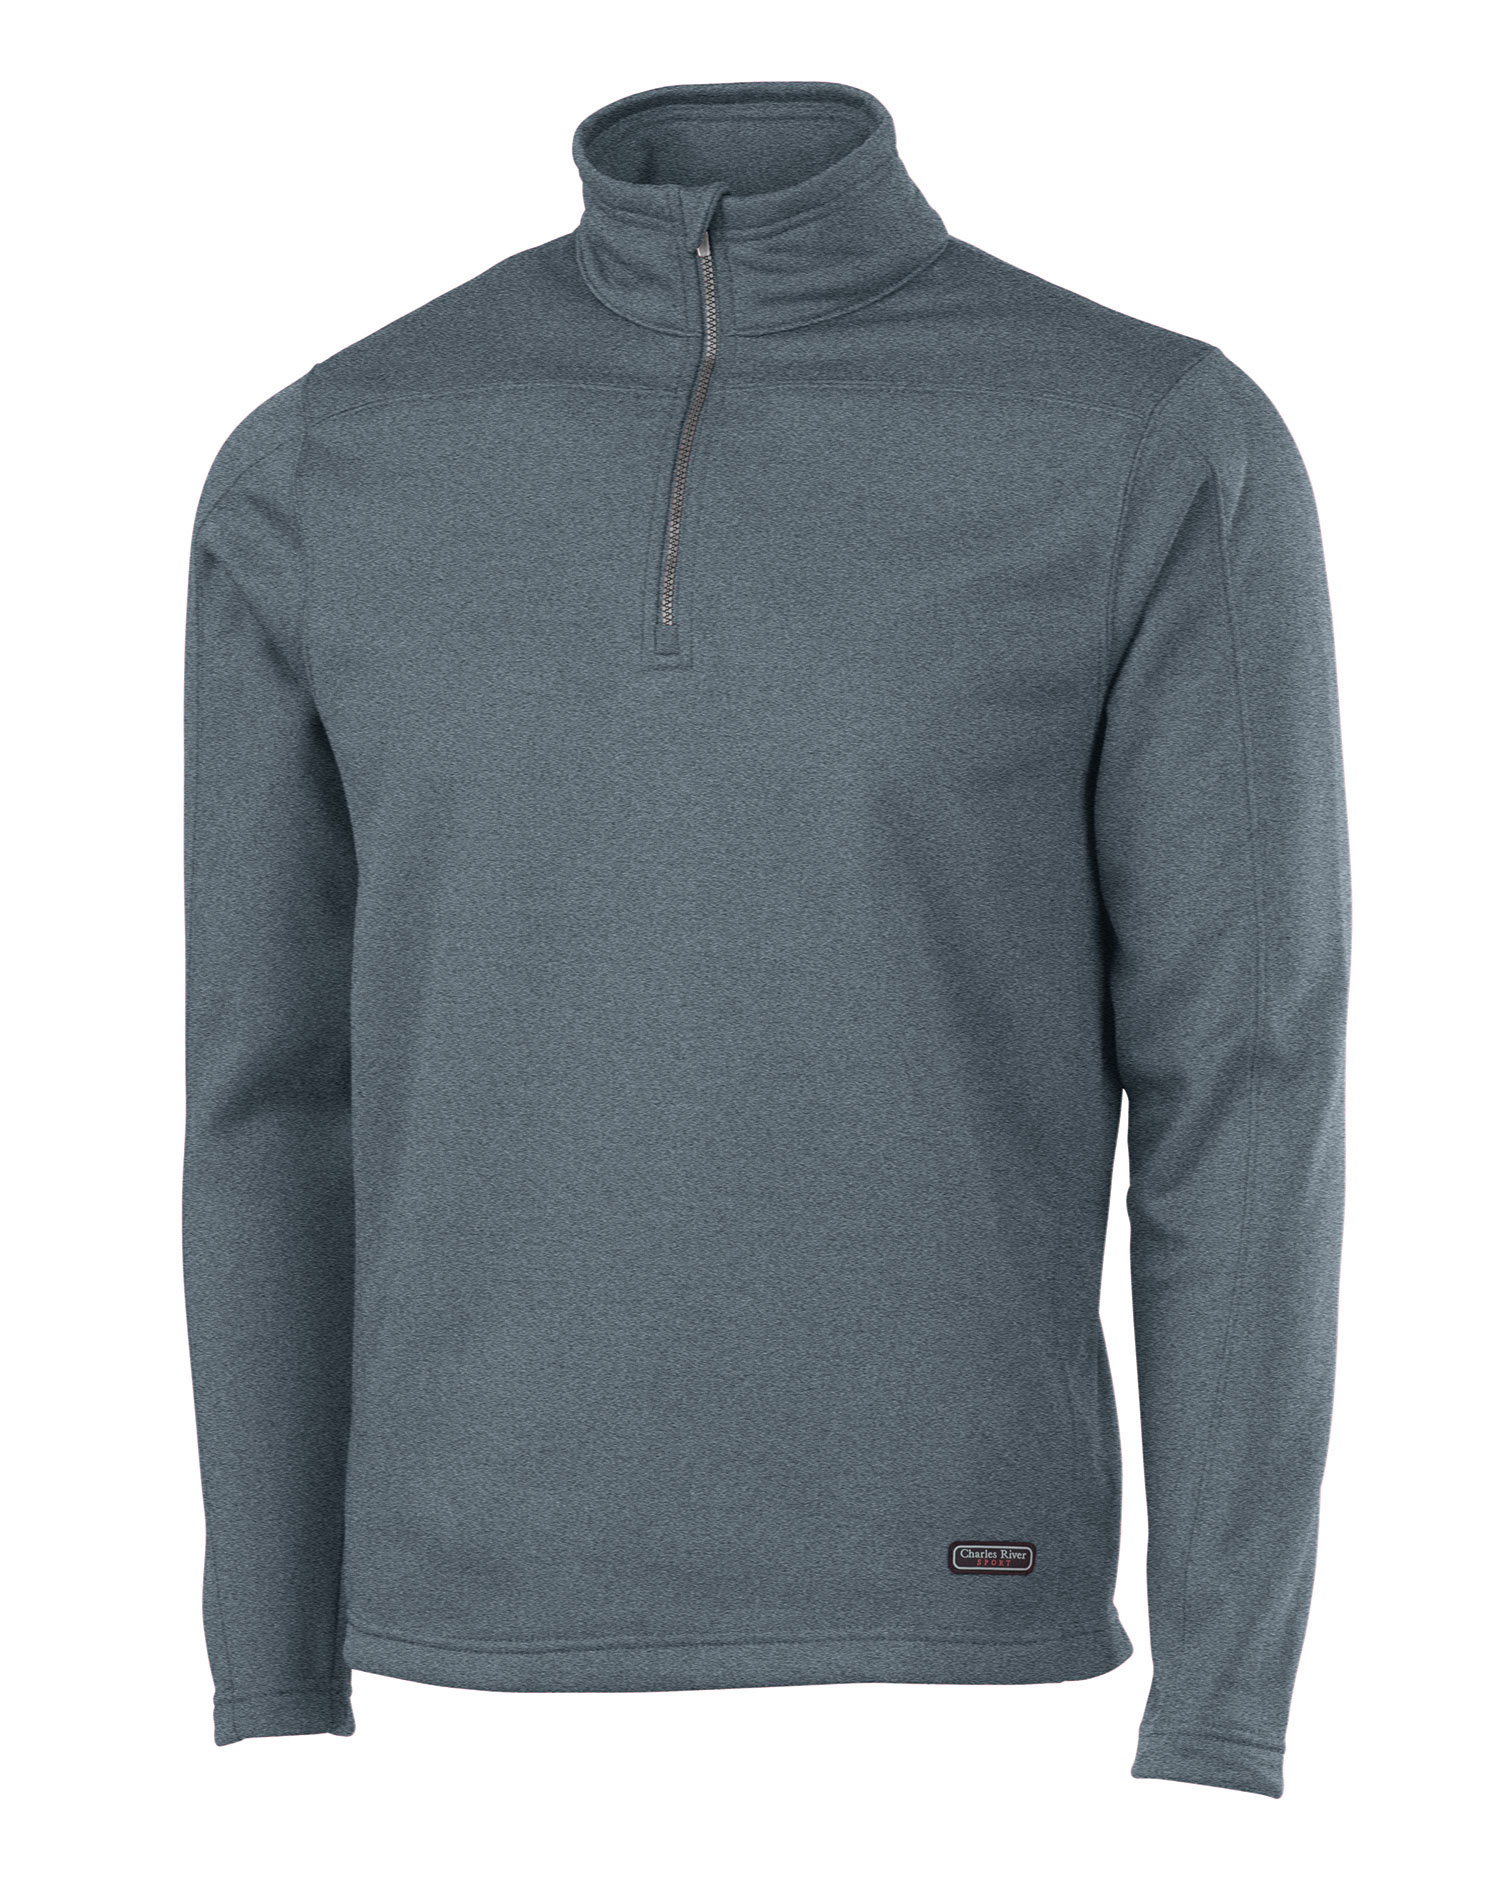 Charles River Apparel Adult Stealth Zip Pullover